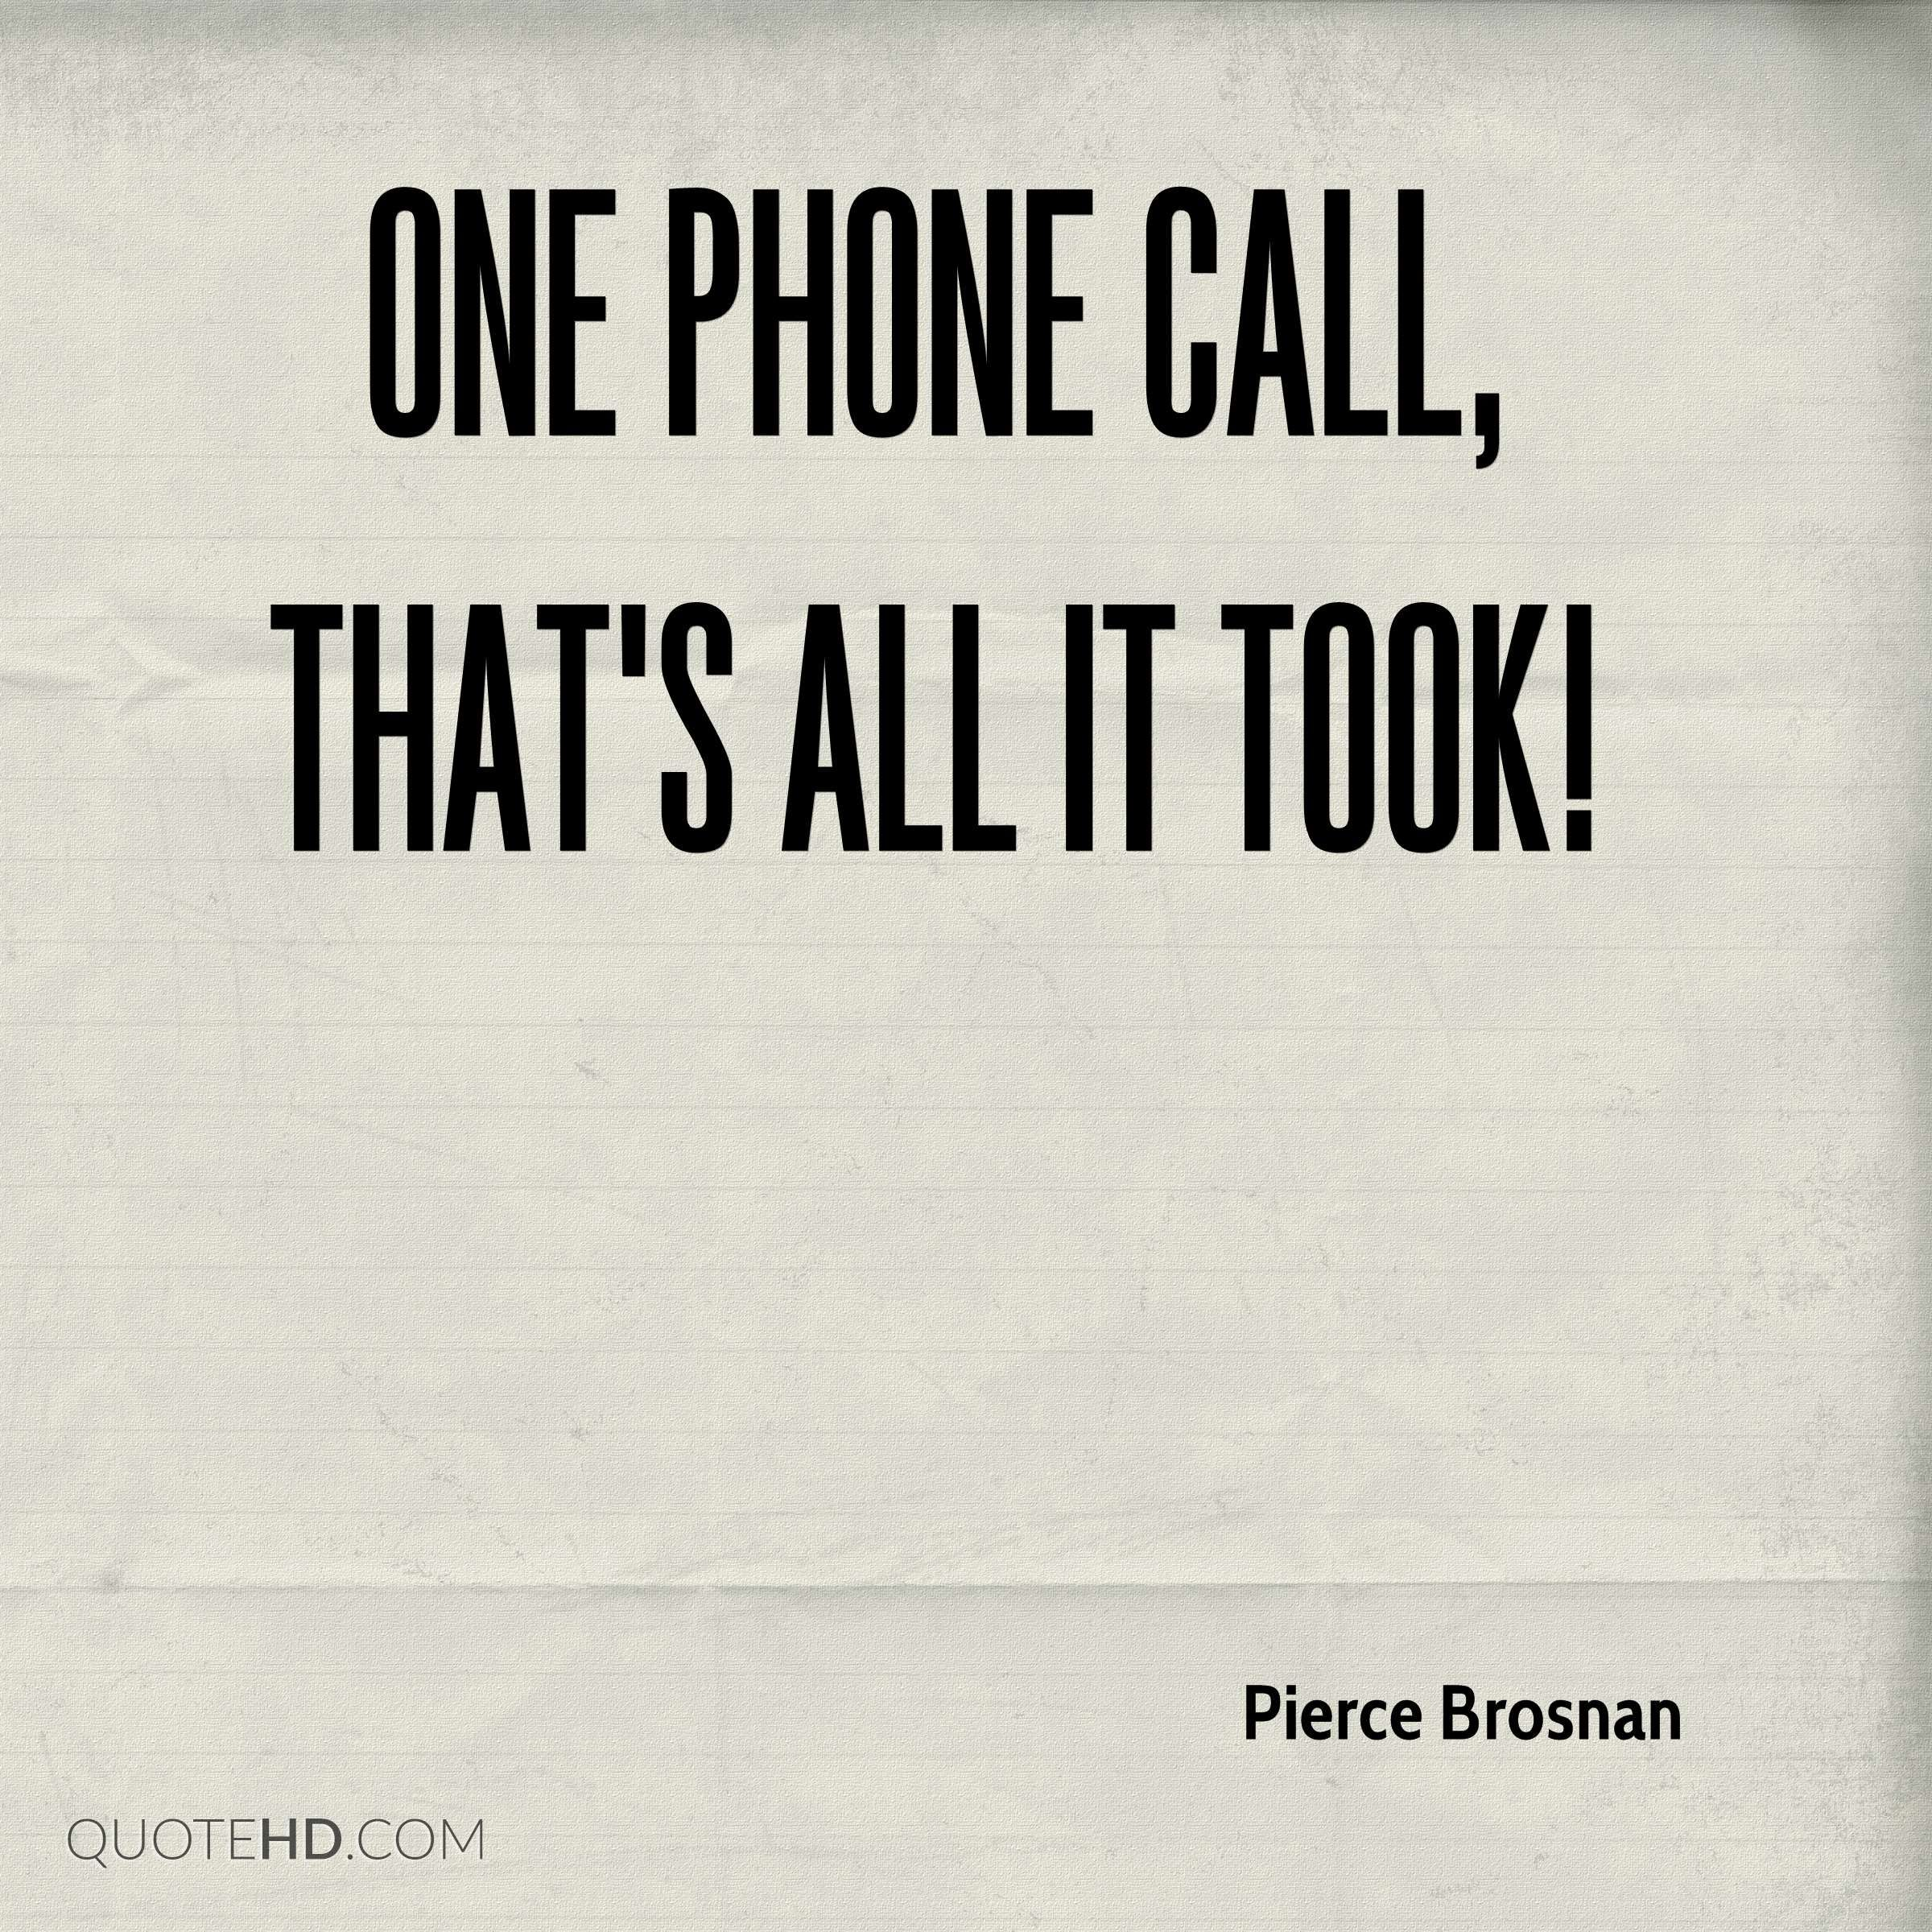 Phone Call Quotes Brilliant Piercebrosnanquoteonephonecallthatsallittook 2400×240